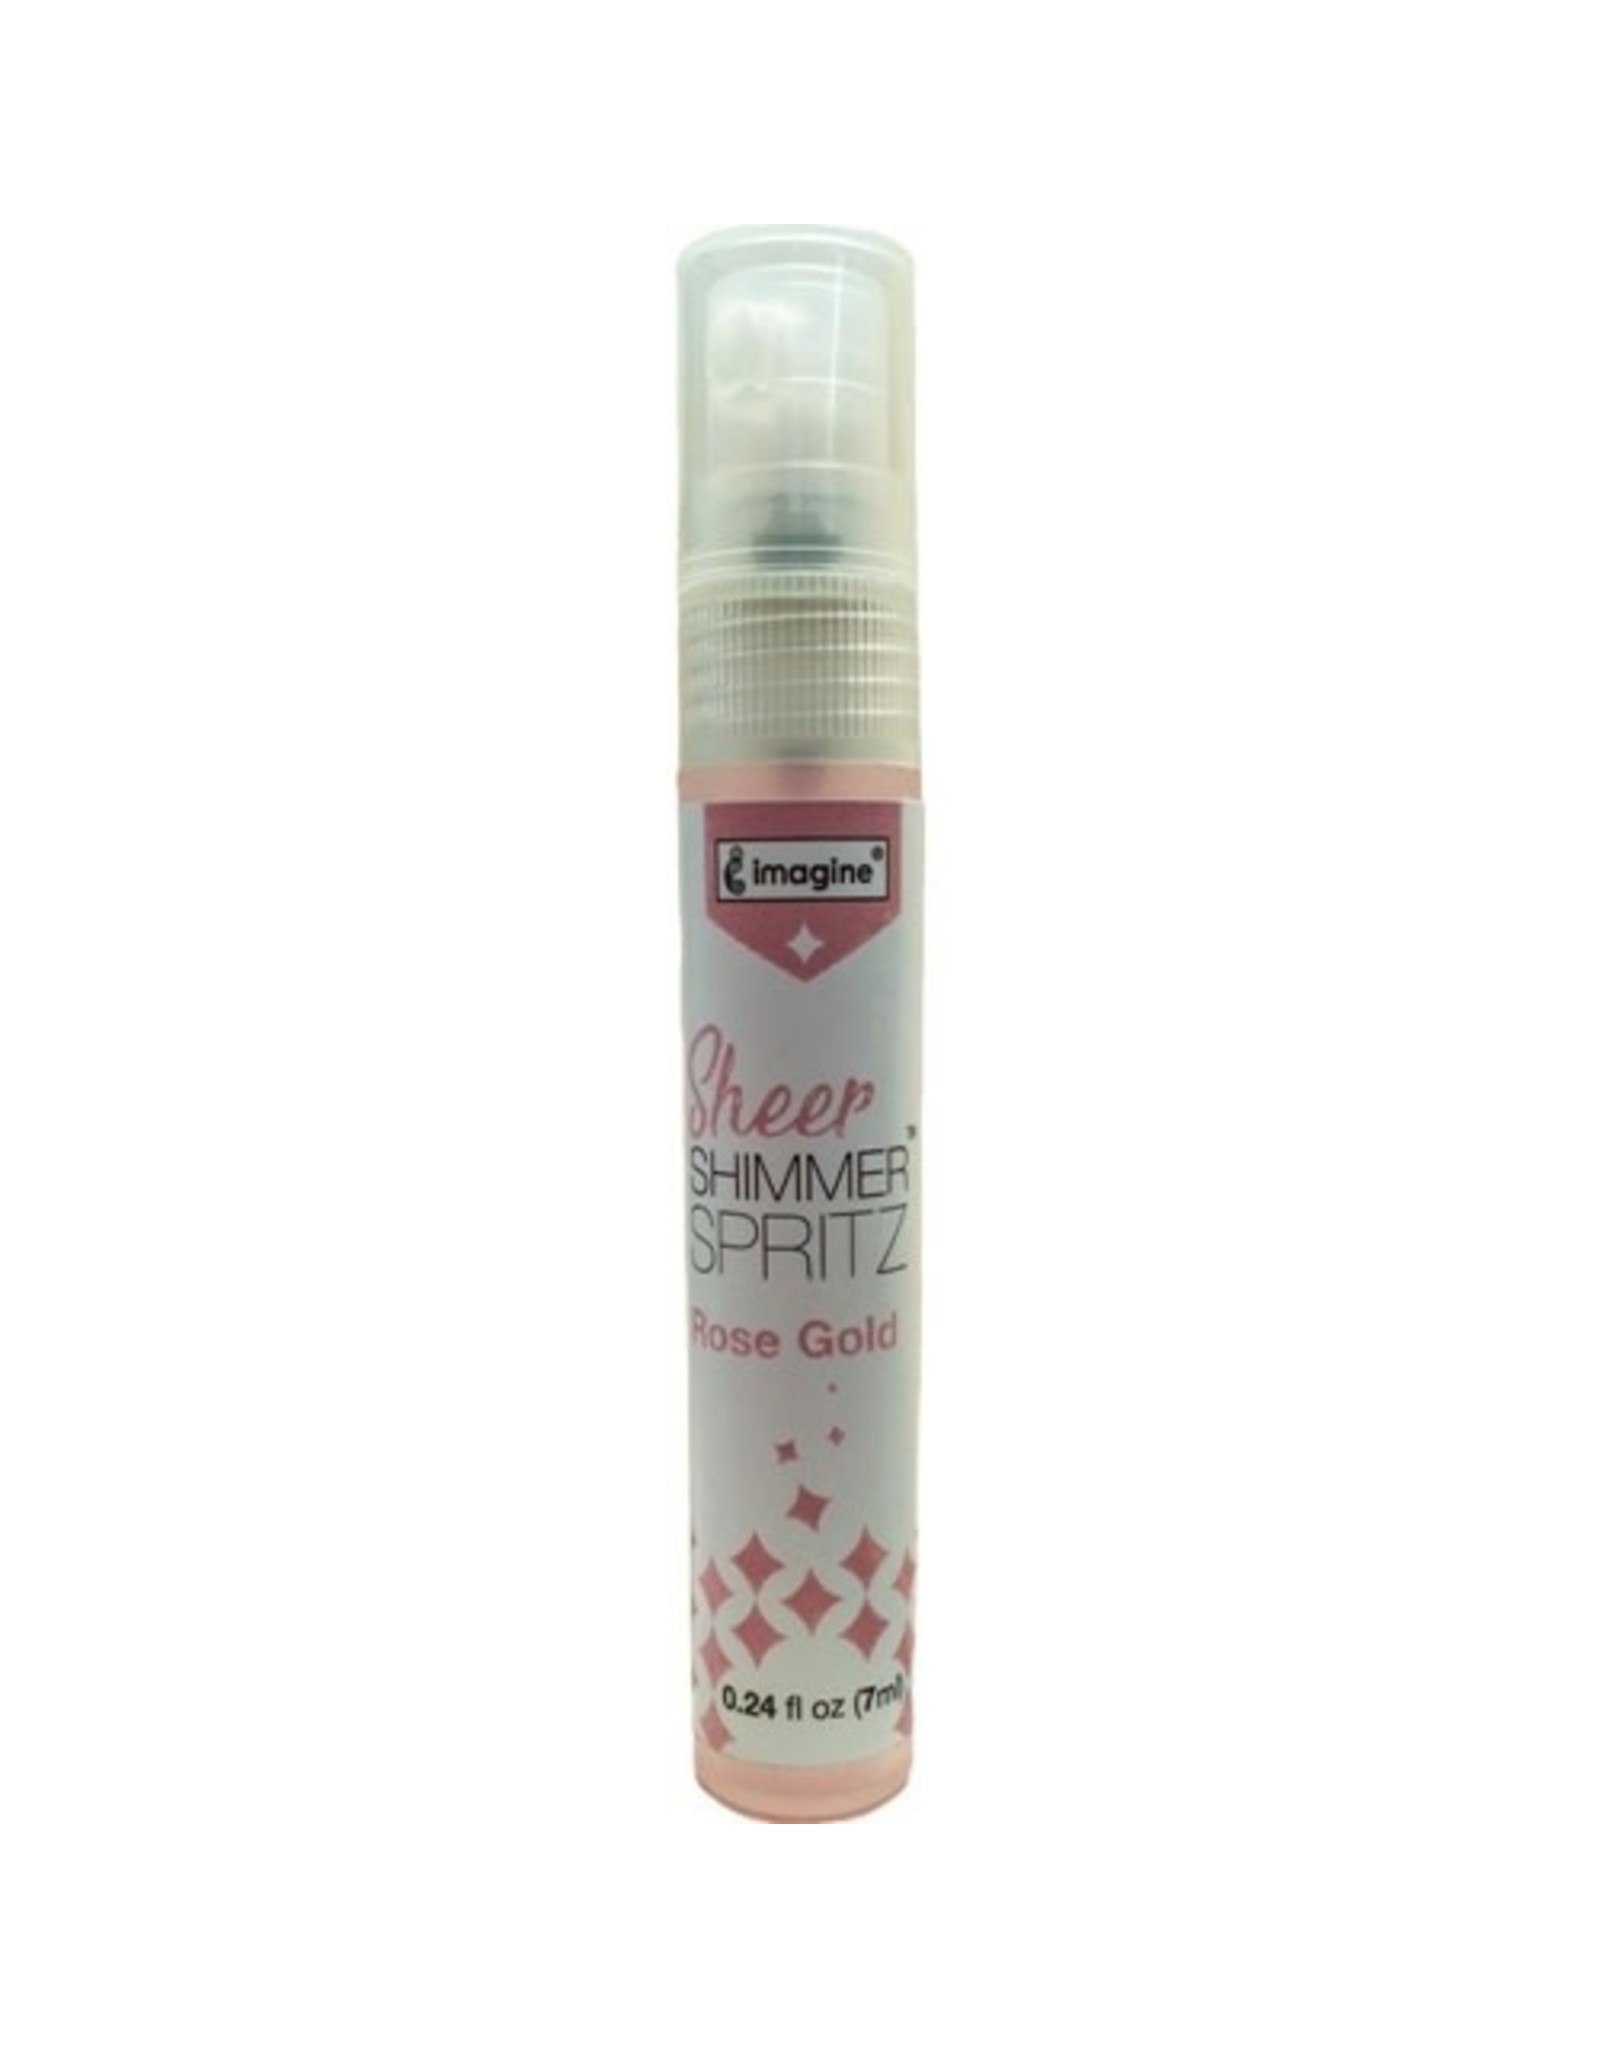 Imagine Crafts Psst Shimmer Spritz - Rose Gold